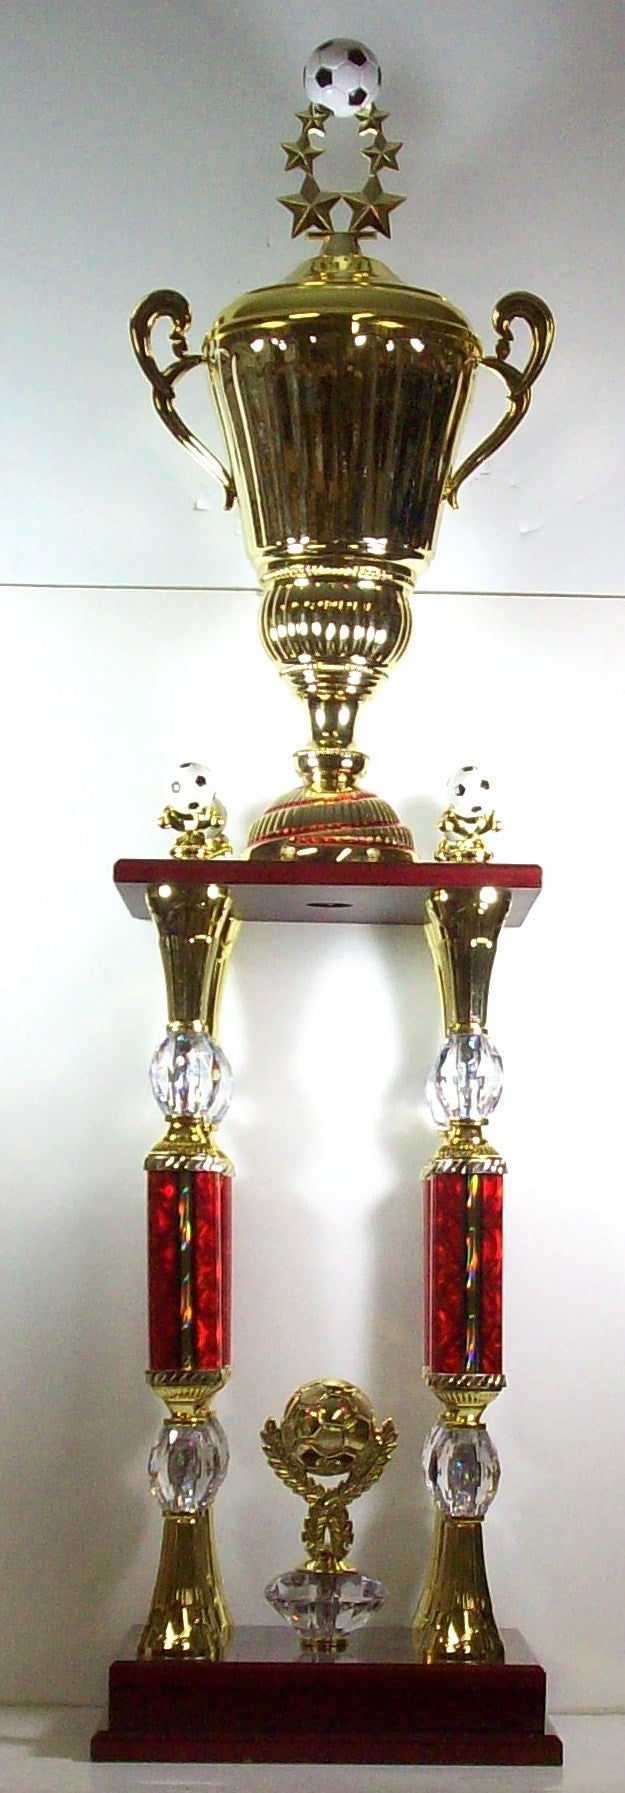 4 Post 44 inch Soccer Trophy